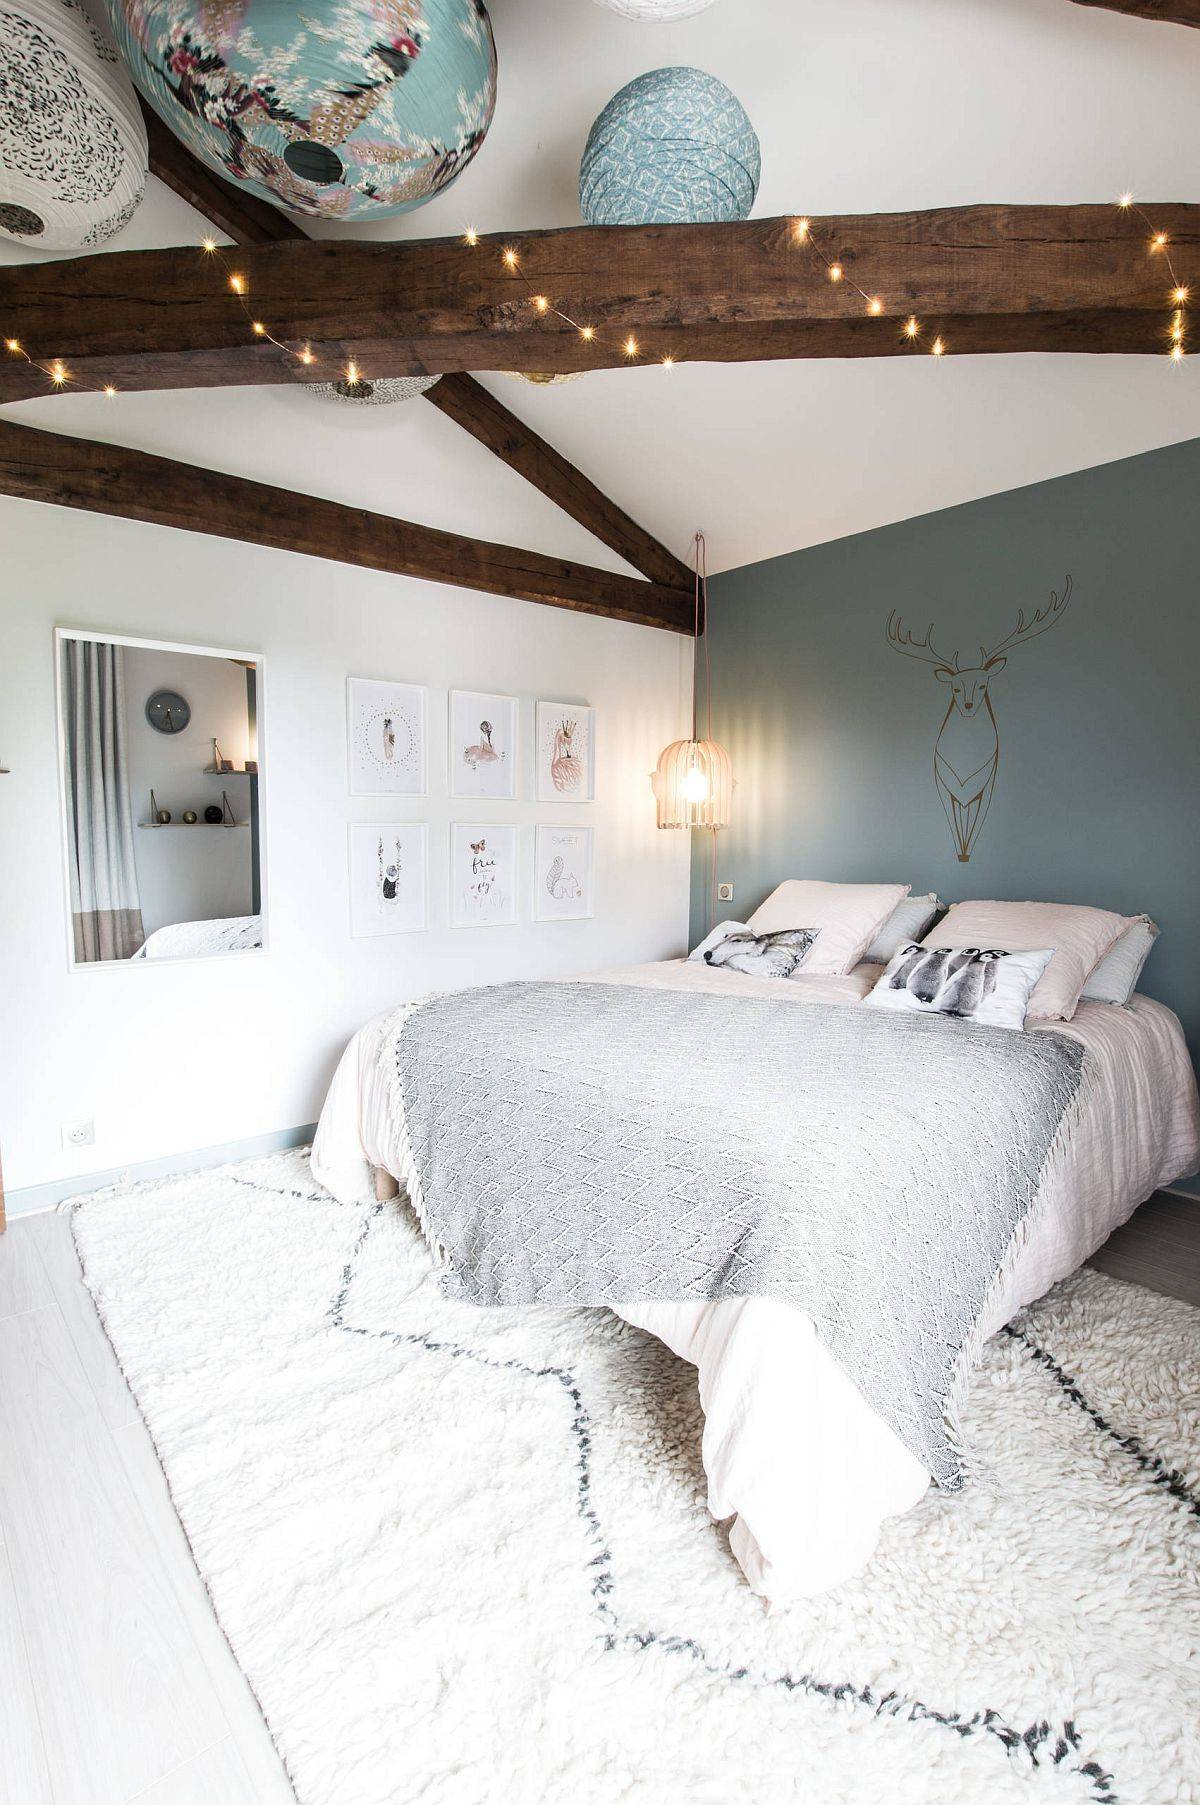 Casual and eye-catching lighting fixtures for the breezy teen room with Scandinavian style